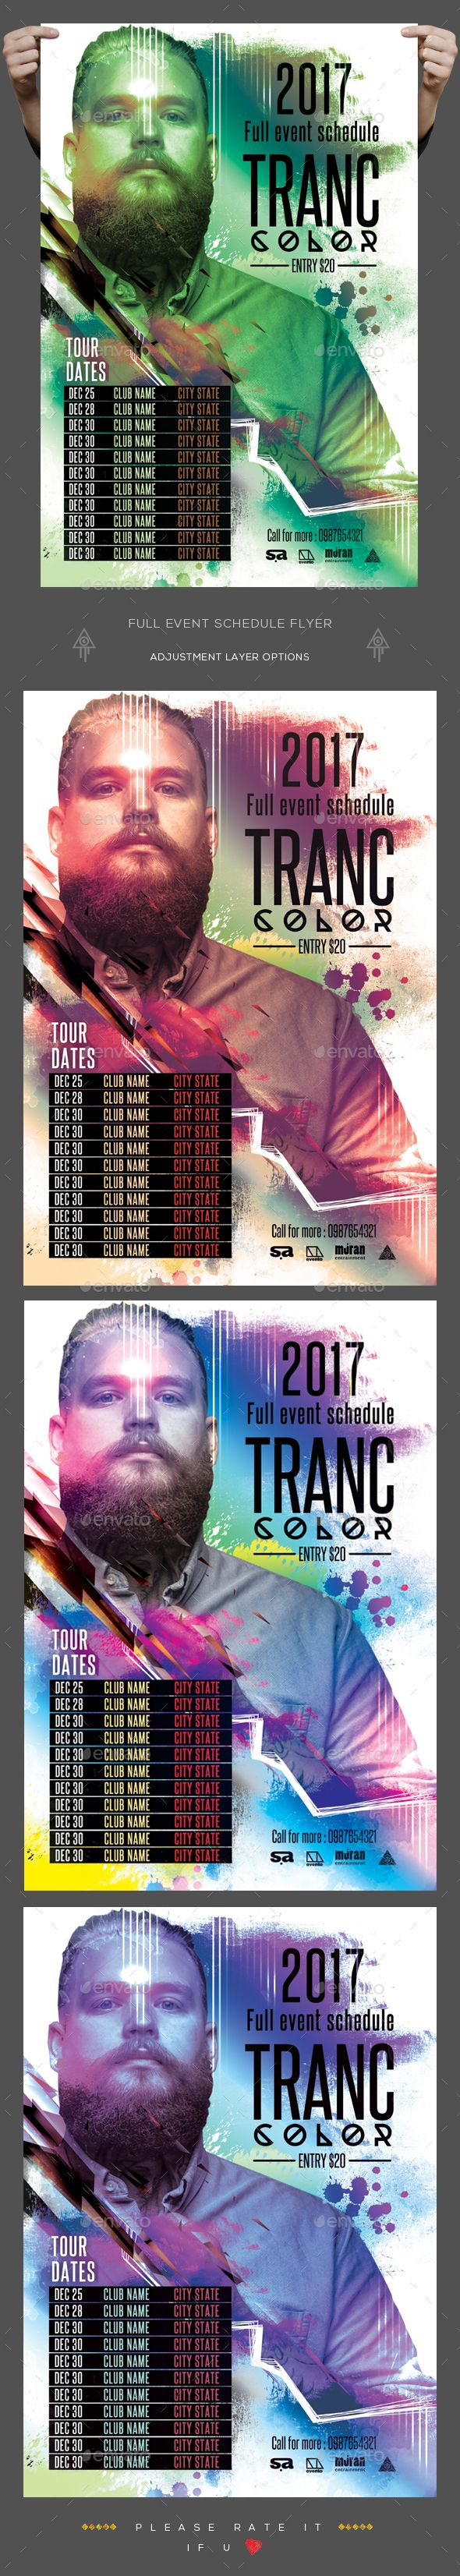 Full Event Schedule Flyer  Flyer Template Party Flyer And